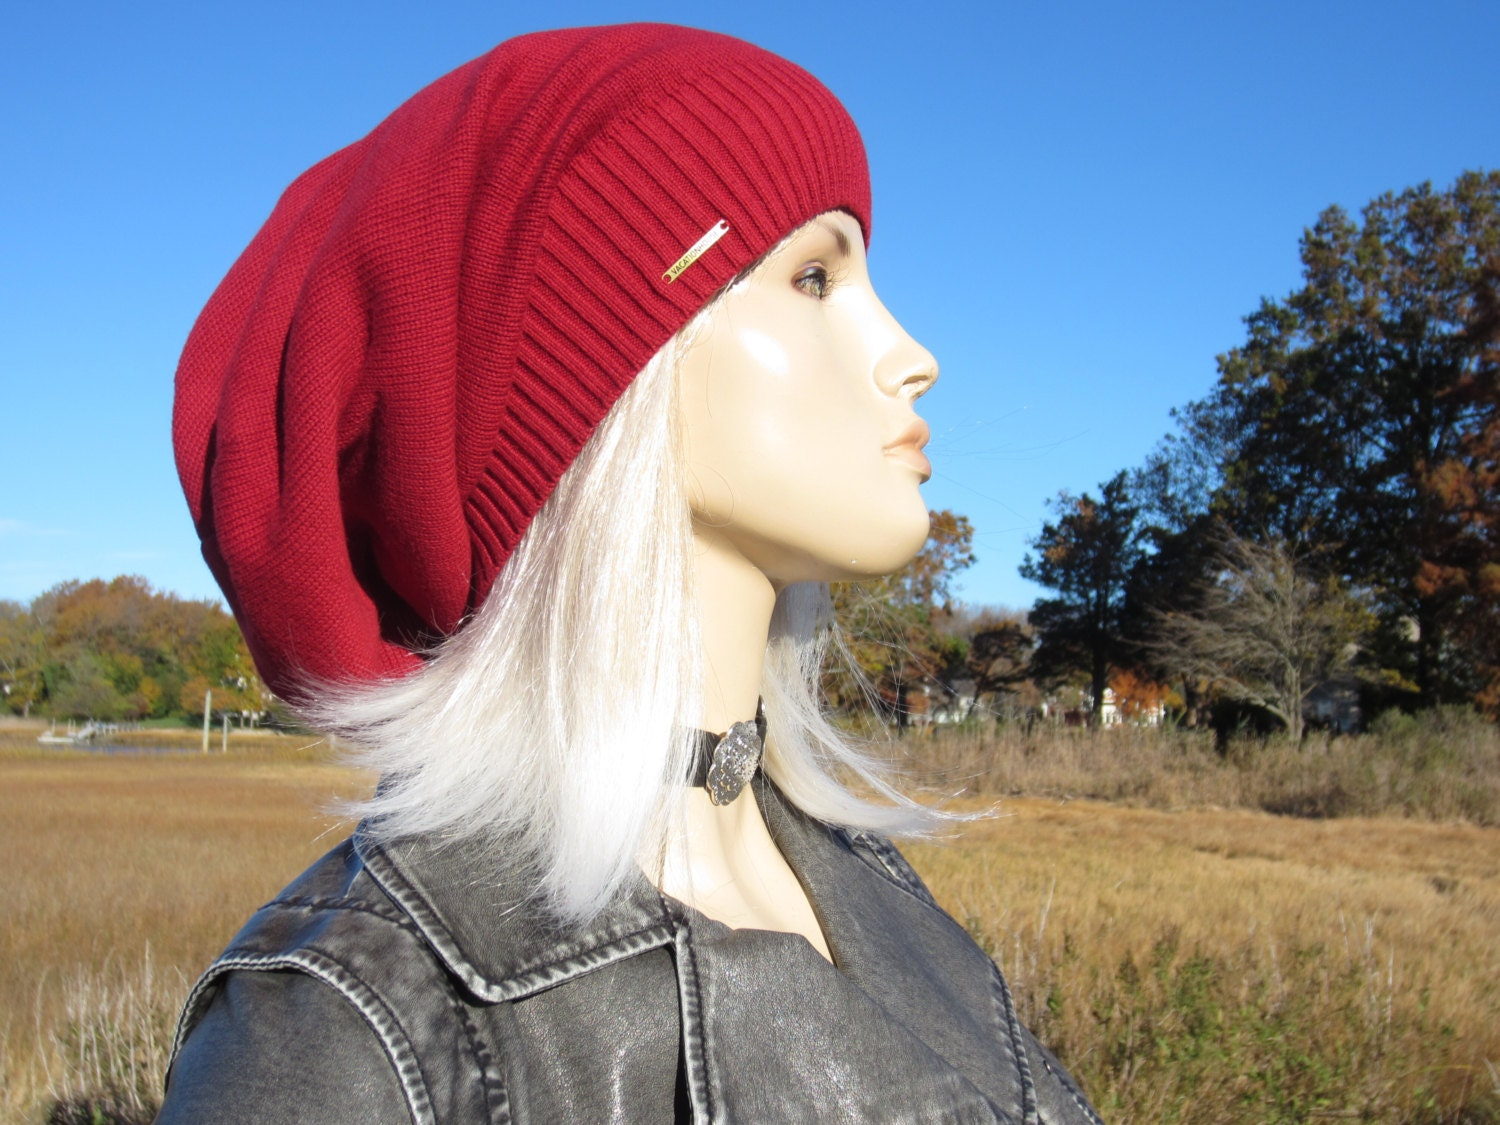 Big Slouchy Beanie Hat Red Knit Cotton Oversized Baggy Dreadlock Tam Basic  Plain No words By VACATIONHOUSE A1941 3fd1654b16a